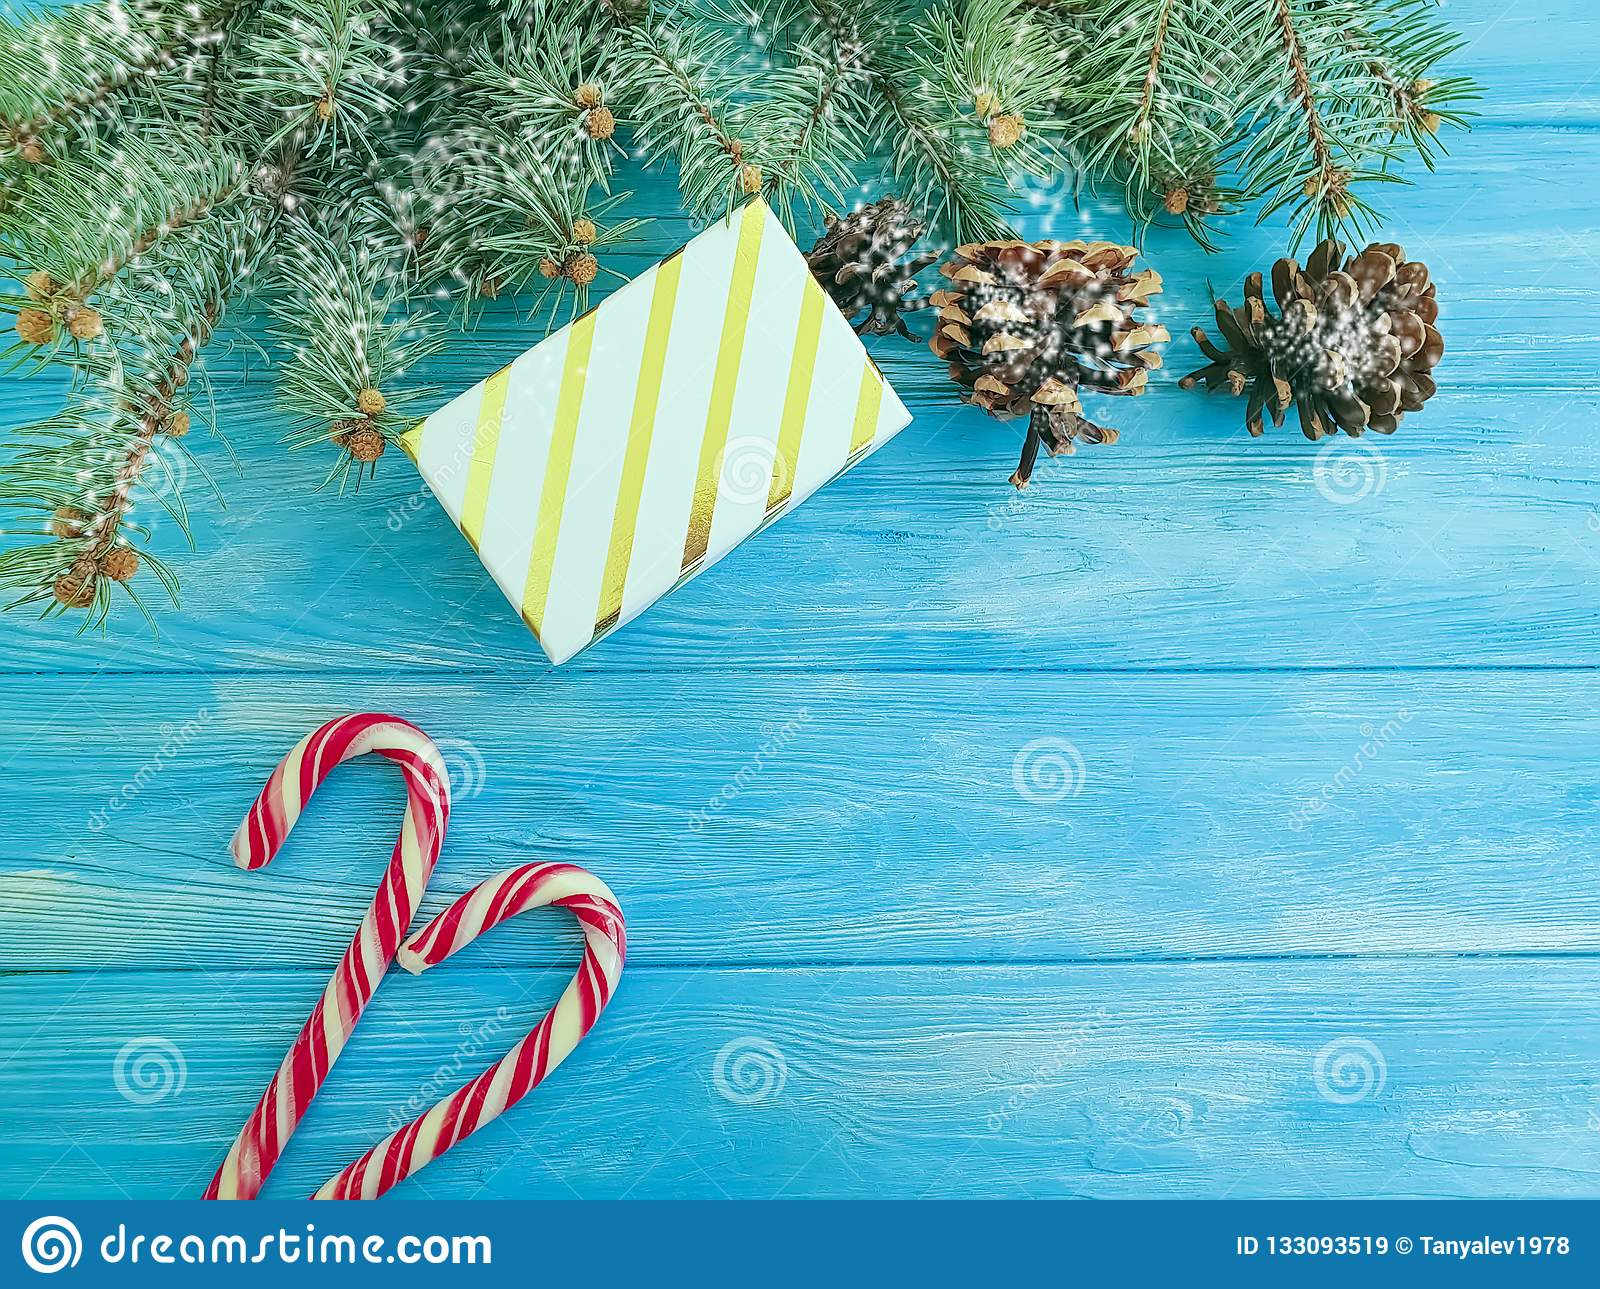 Candy Christmas Tree Branch Festive Decoration Border Present Snow Gift Box On A Blue Wooden Background Present Stock Image Image Of Festive Border 133093519